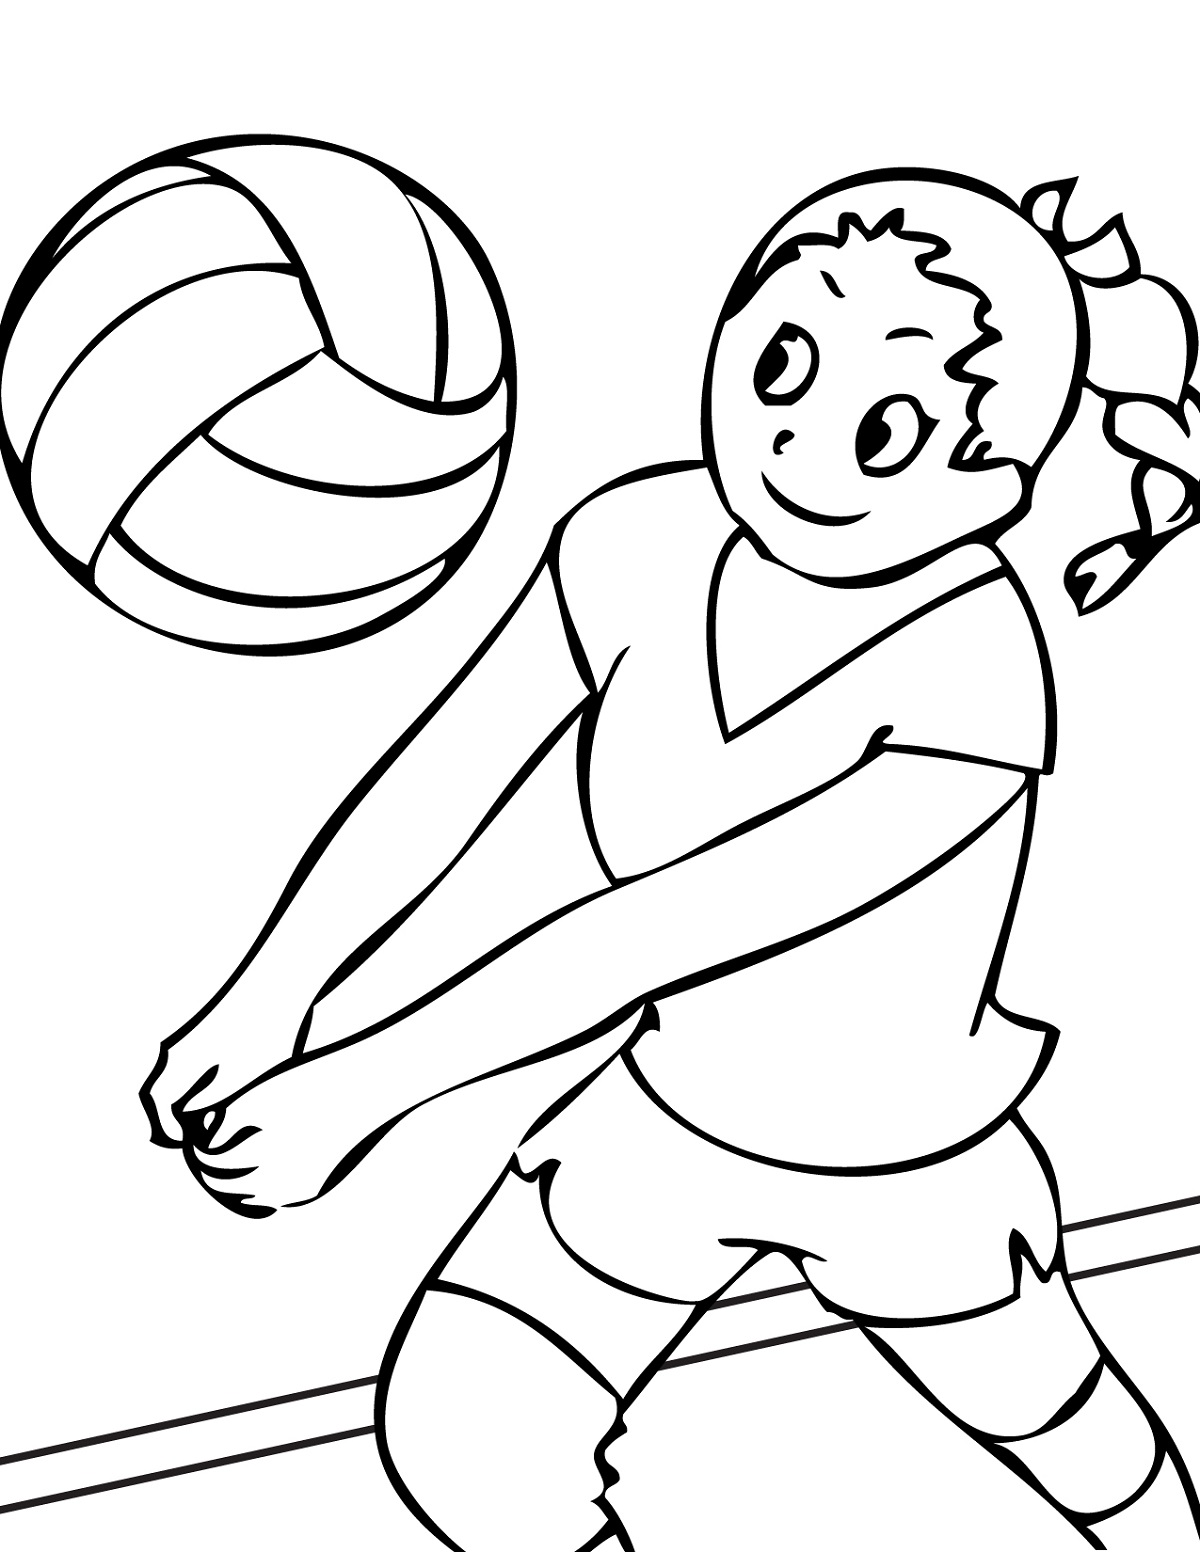 Sports Worksheets For Kids Cute